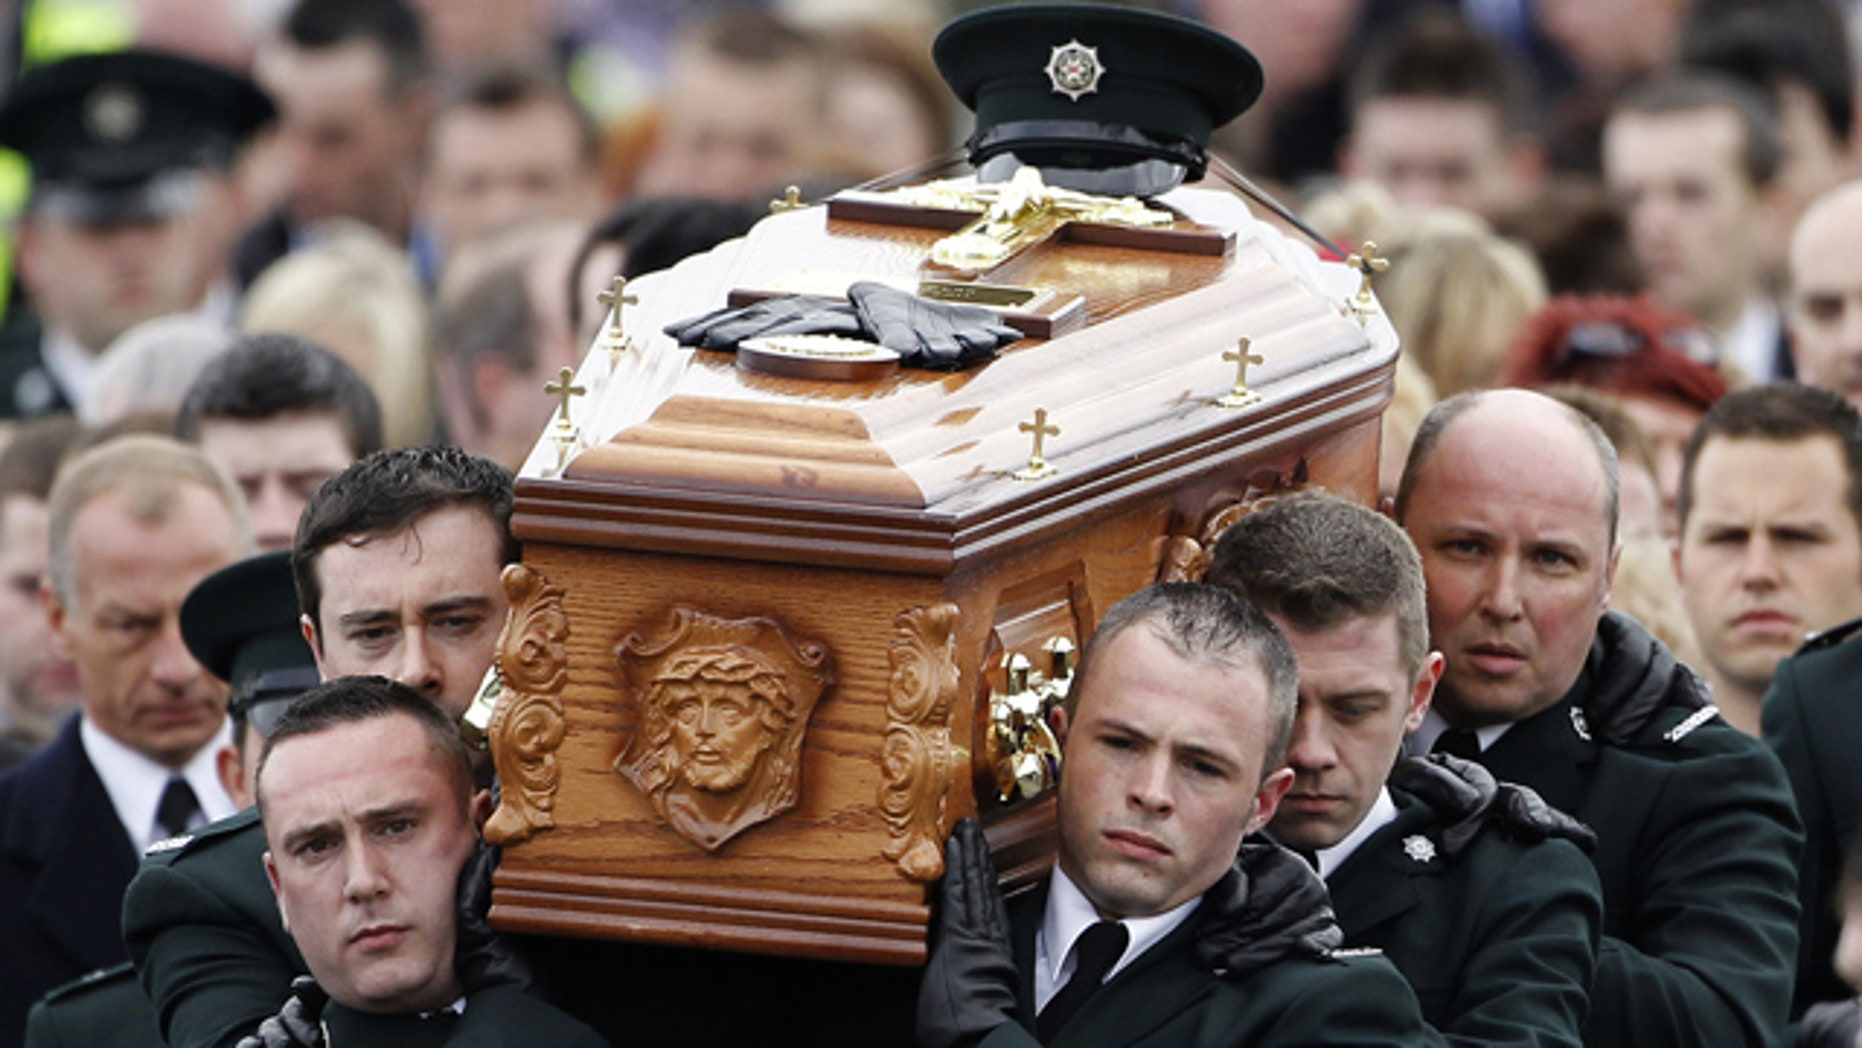 April 6: Police Service of Northern Ireland officers carry the coffin of their colleague Ronan Kerr to a funeral mass at the Church of  Immaculate Conception in Beragh, Northern Ireland.